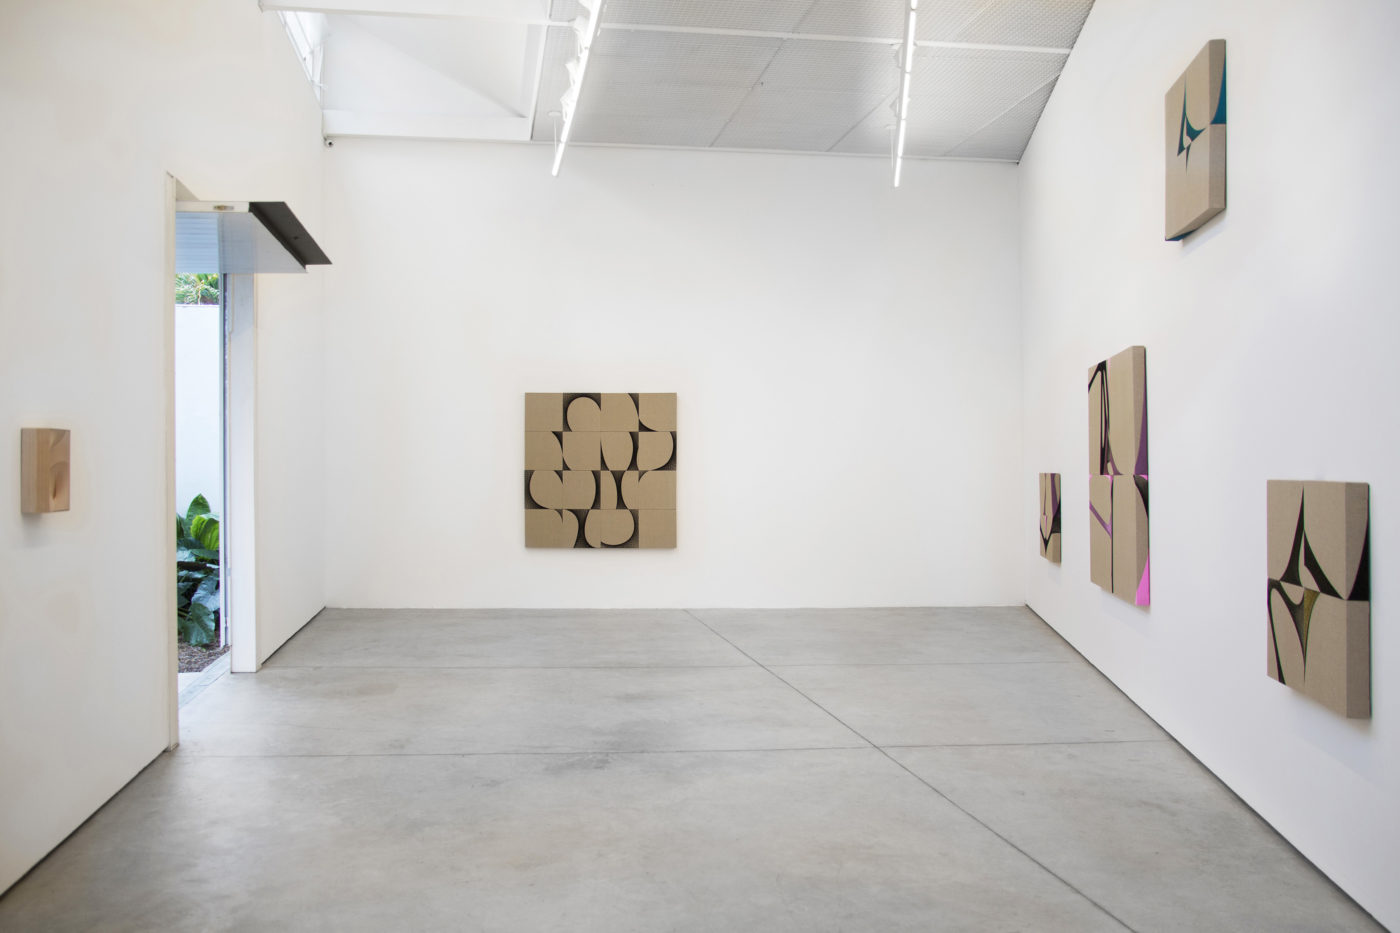 T293 - t twoninethree in-residence at Luciana Brito Galeria - 1